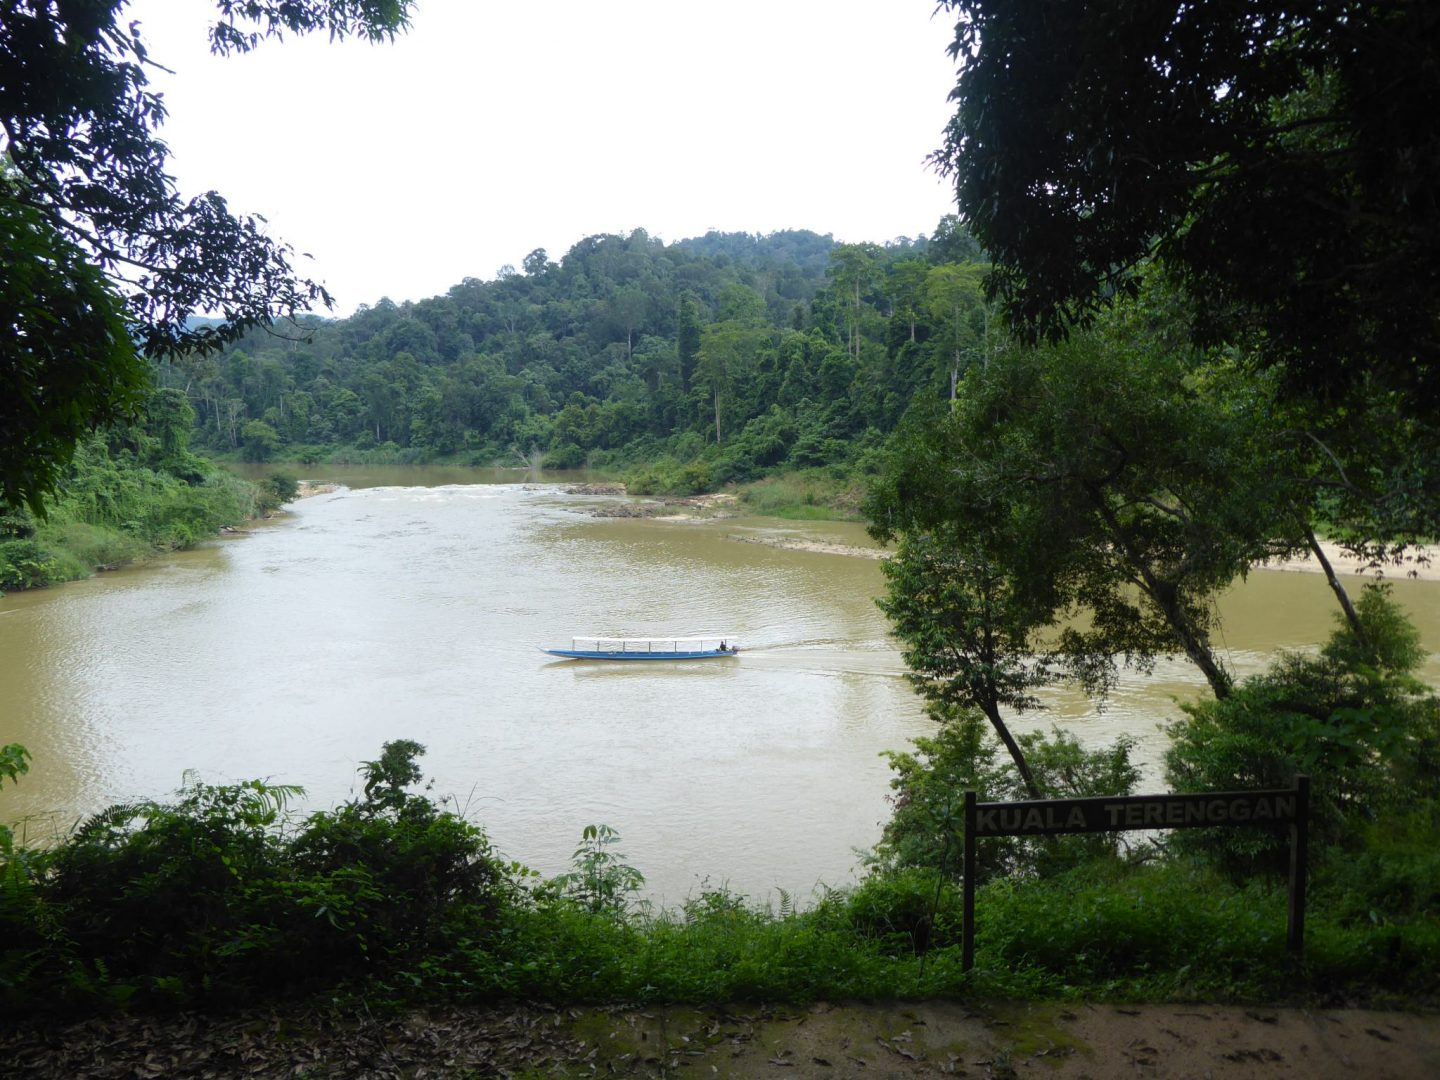 View of river running through Taman Negara,  surrounded by rainforest